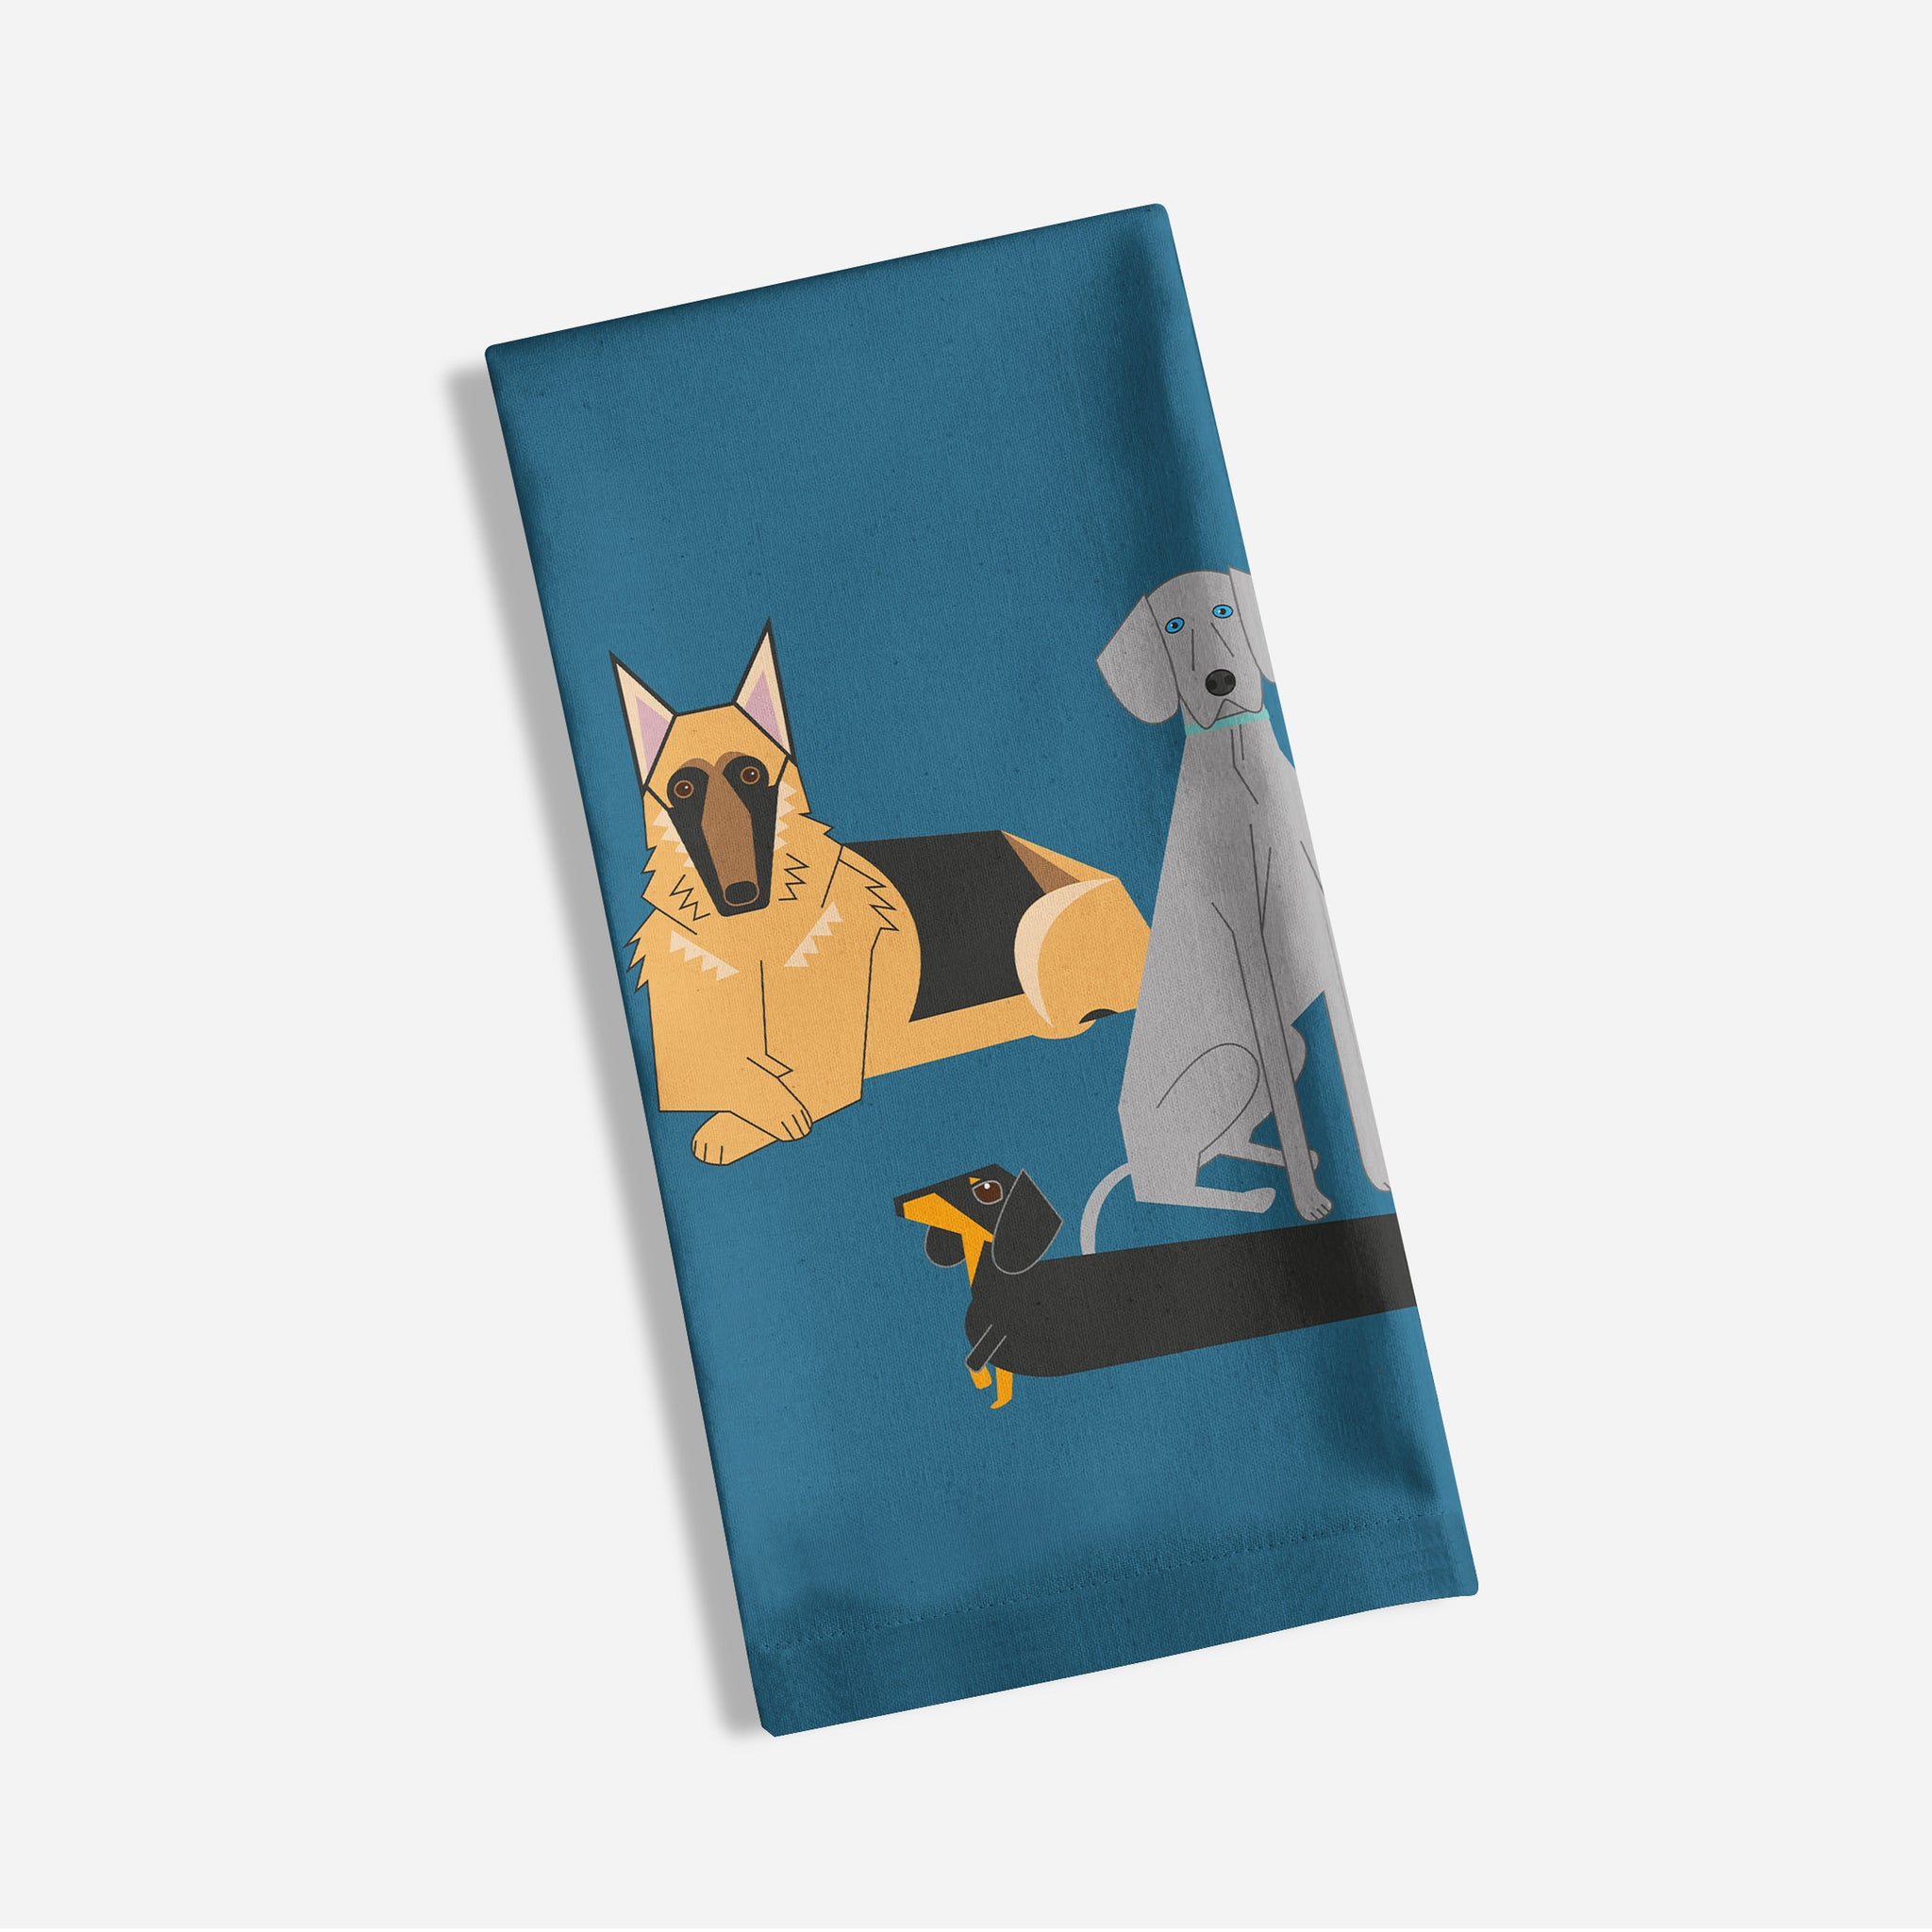 Doggy friends blue tea towel made from 100% organic cotton